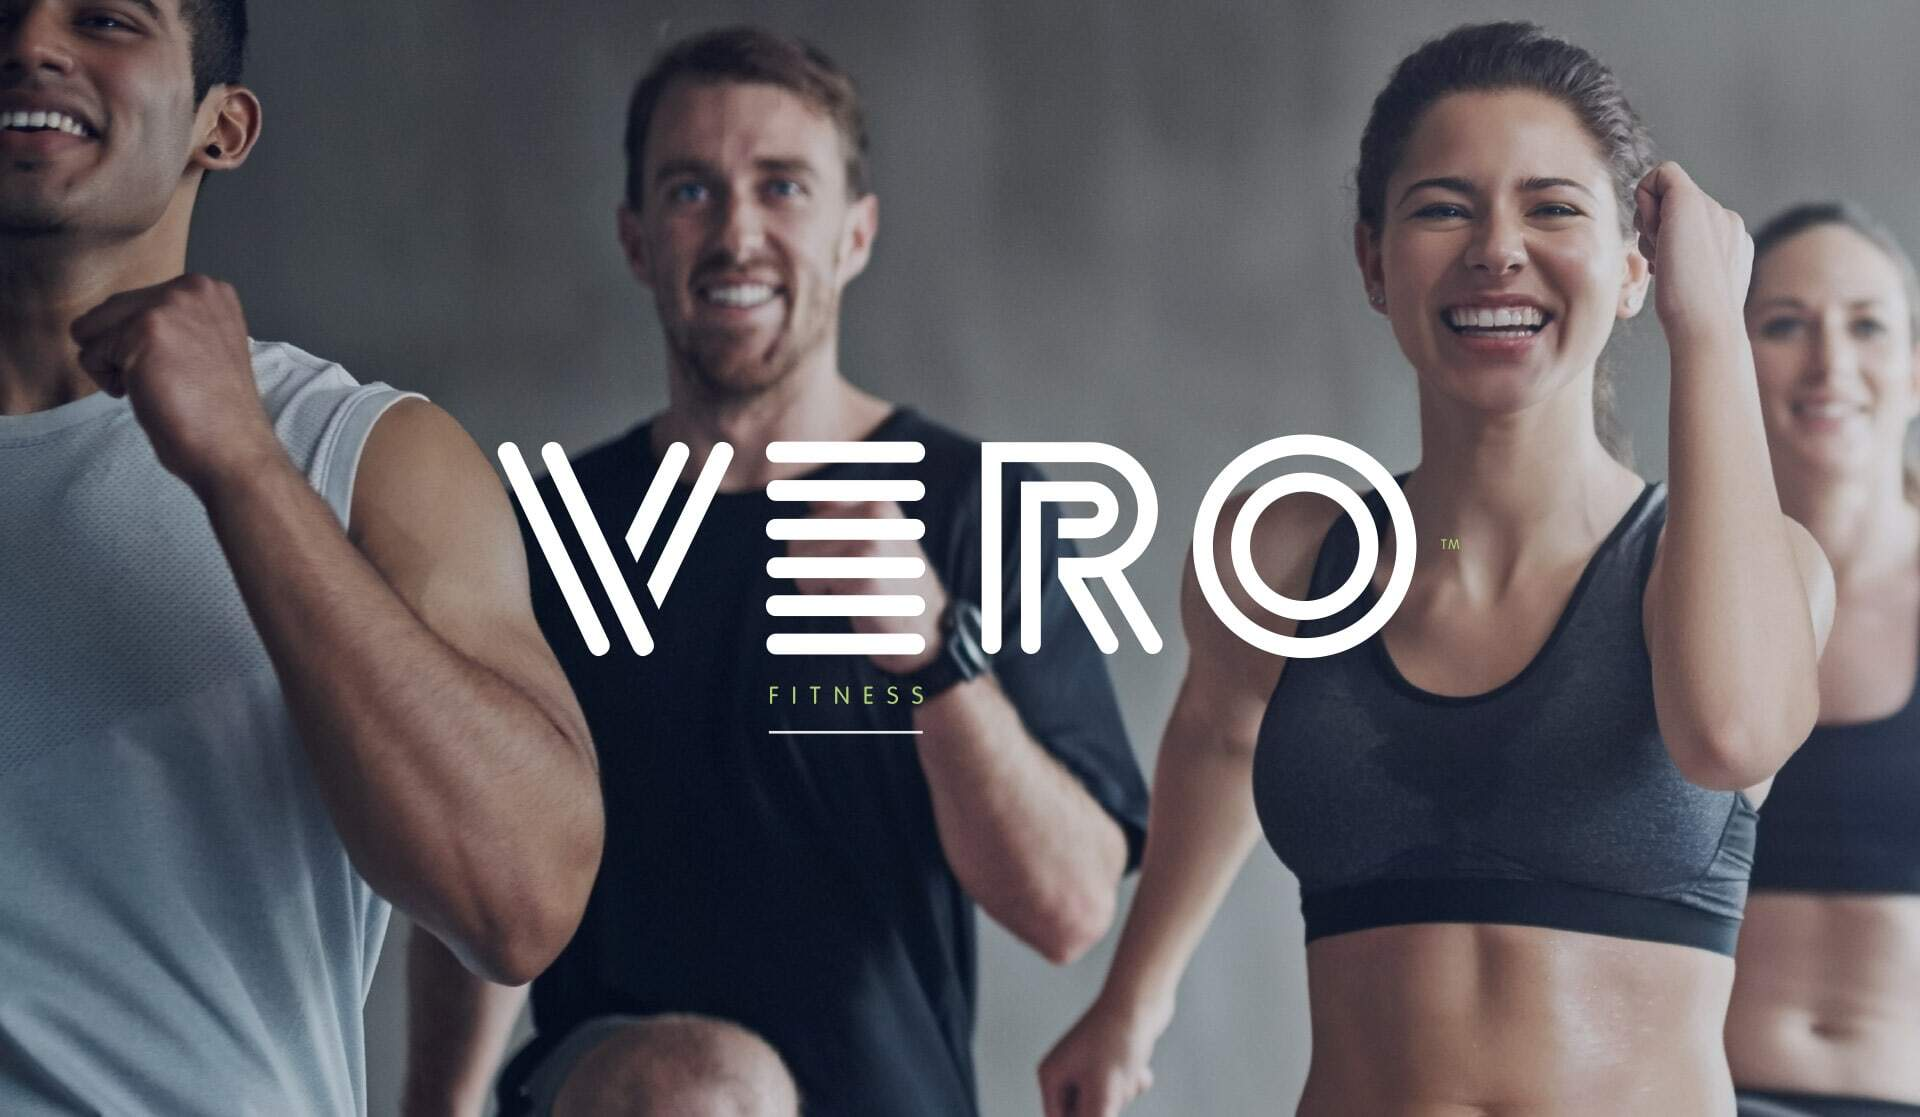 business naming company new gym fitness brand name